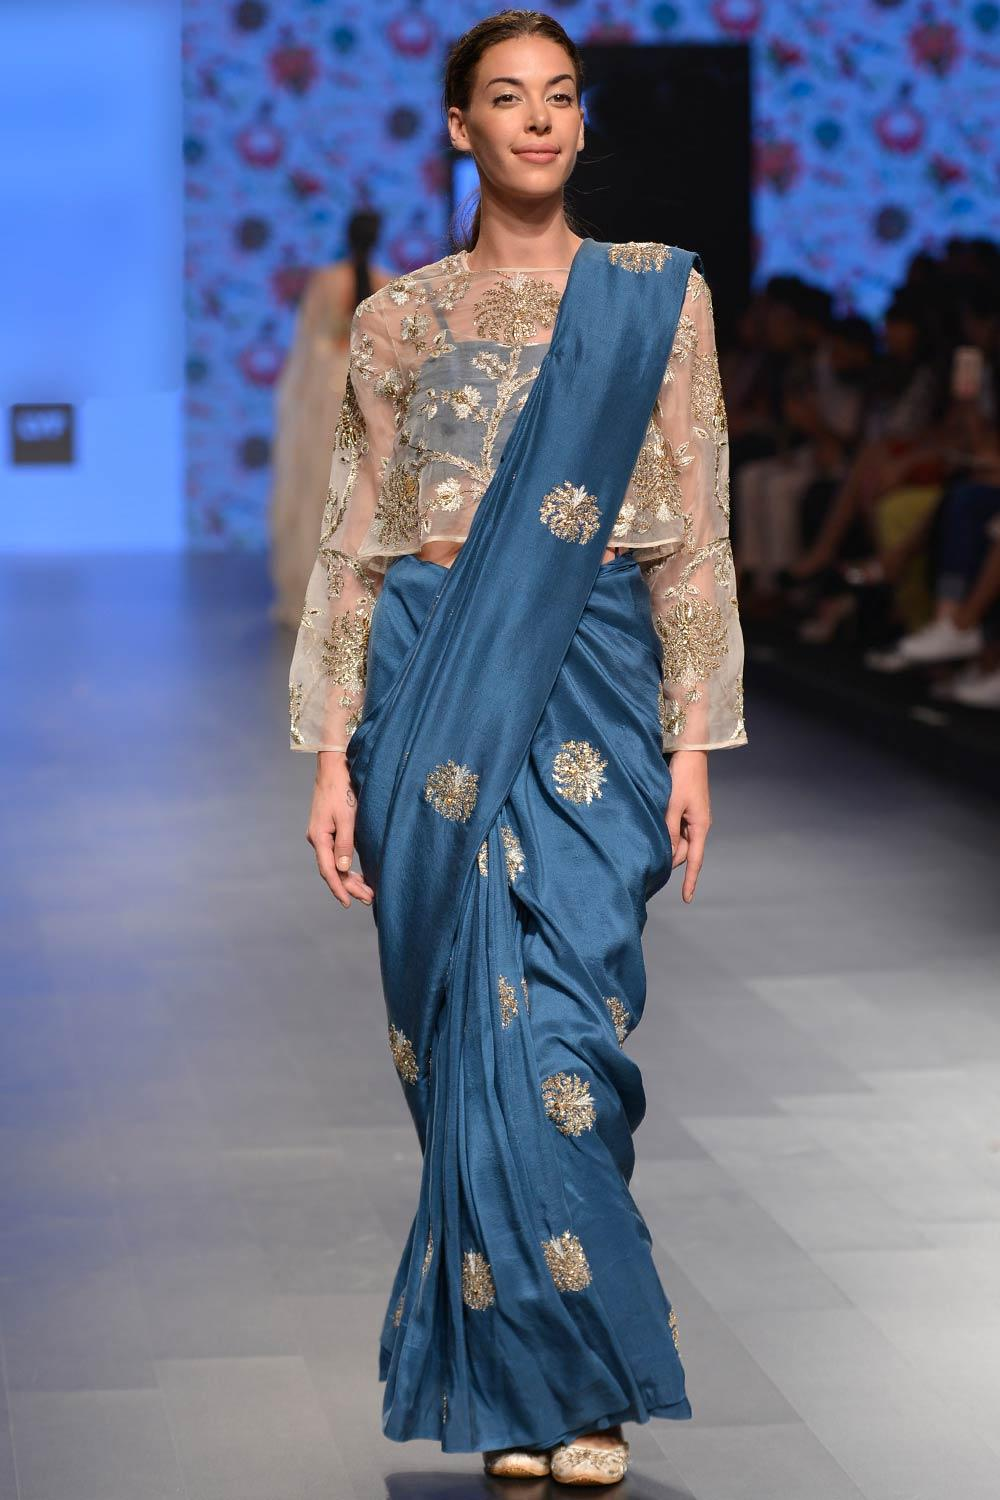 PAS050416W389 1 - How To Wear Saree With Crop Tops Like a Pro! Top Tips To Follow